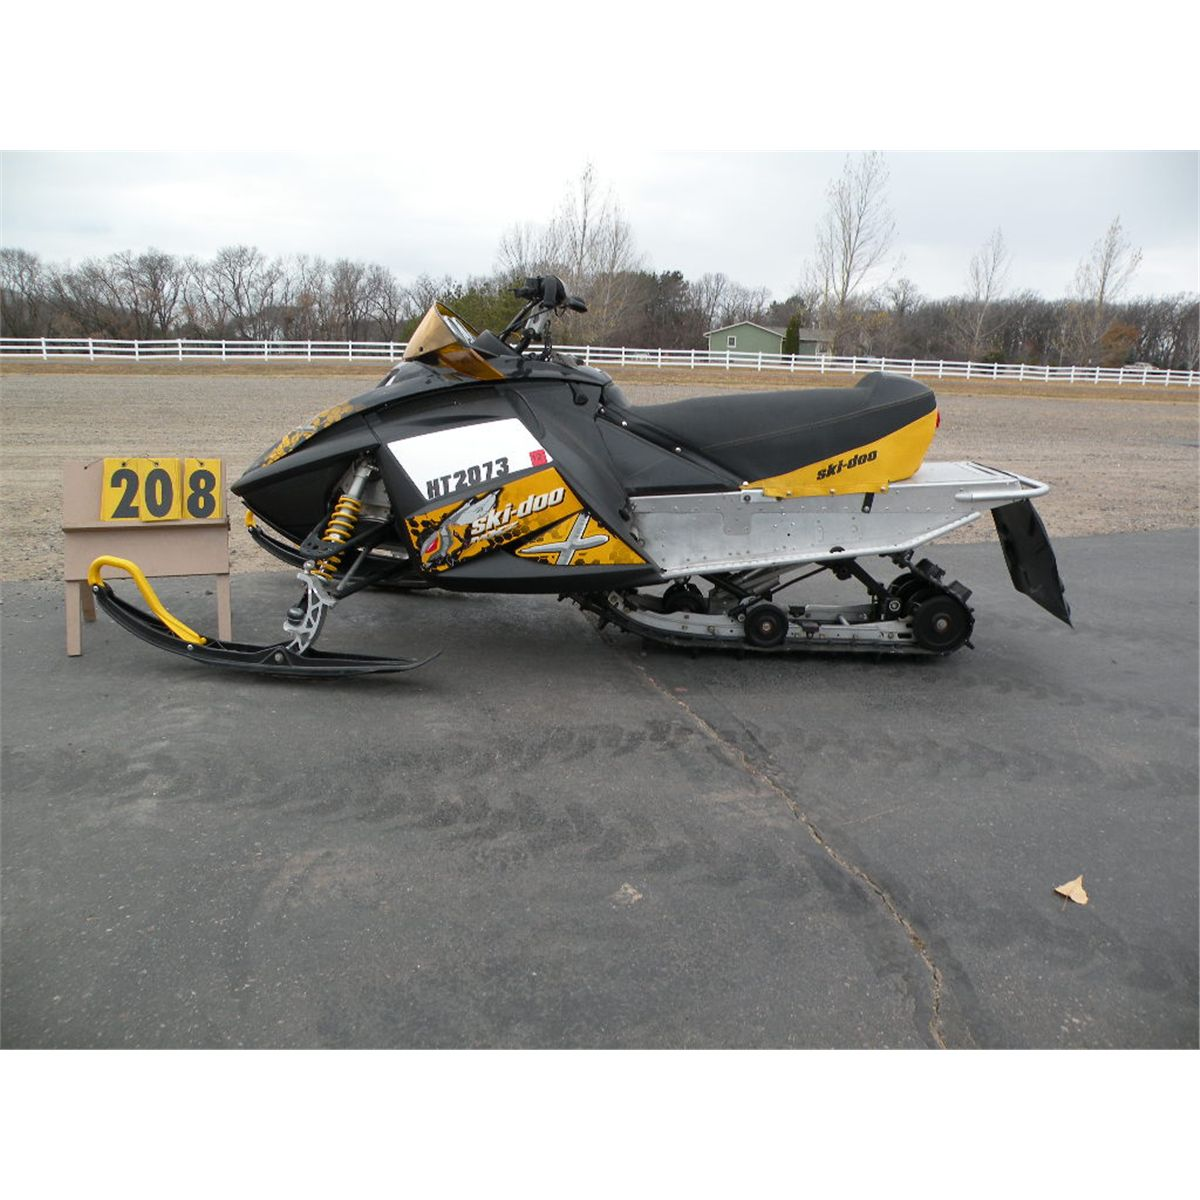 location of vin number for ski doo snowmobile location get free image about wiring diagram